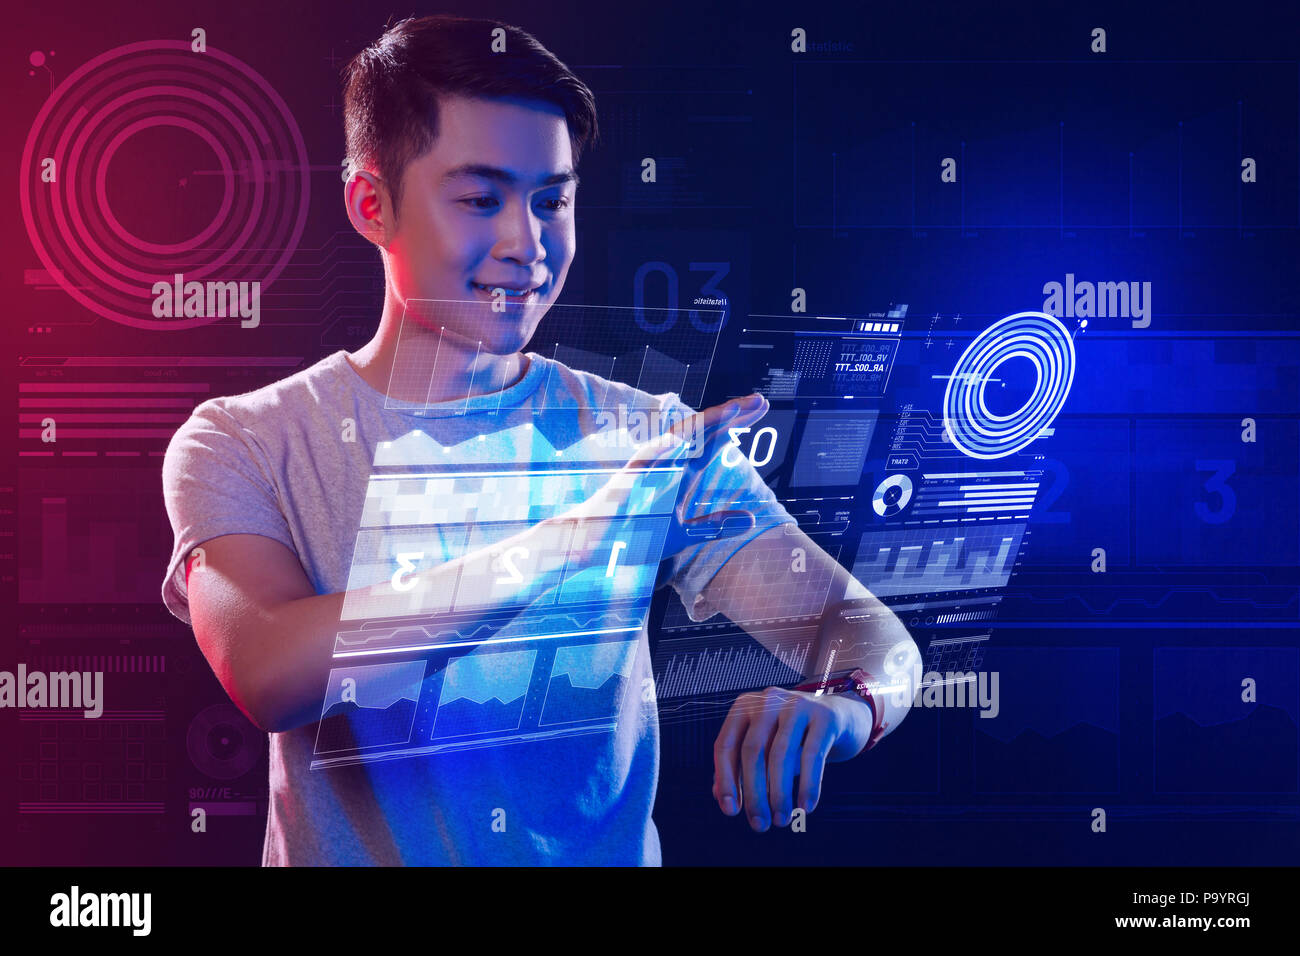 Positive web developer using a smartphone while working with holograms - Stock Image